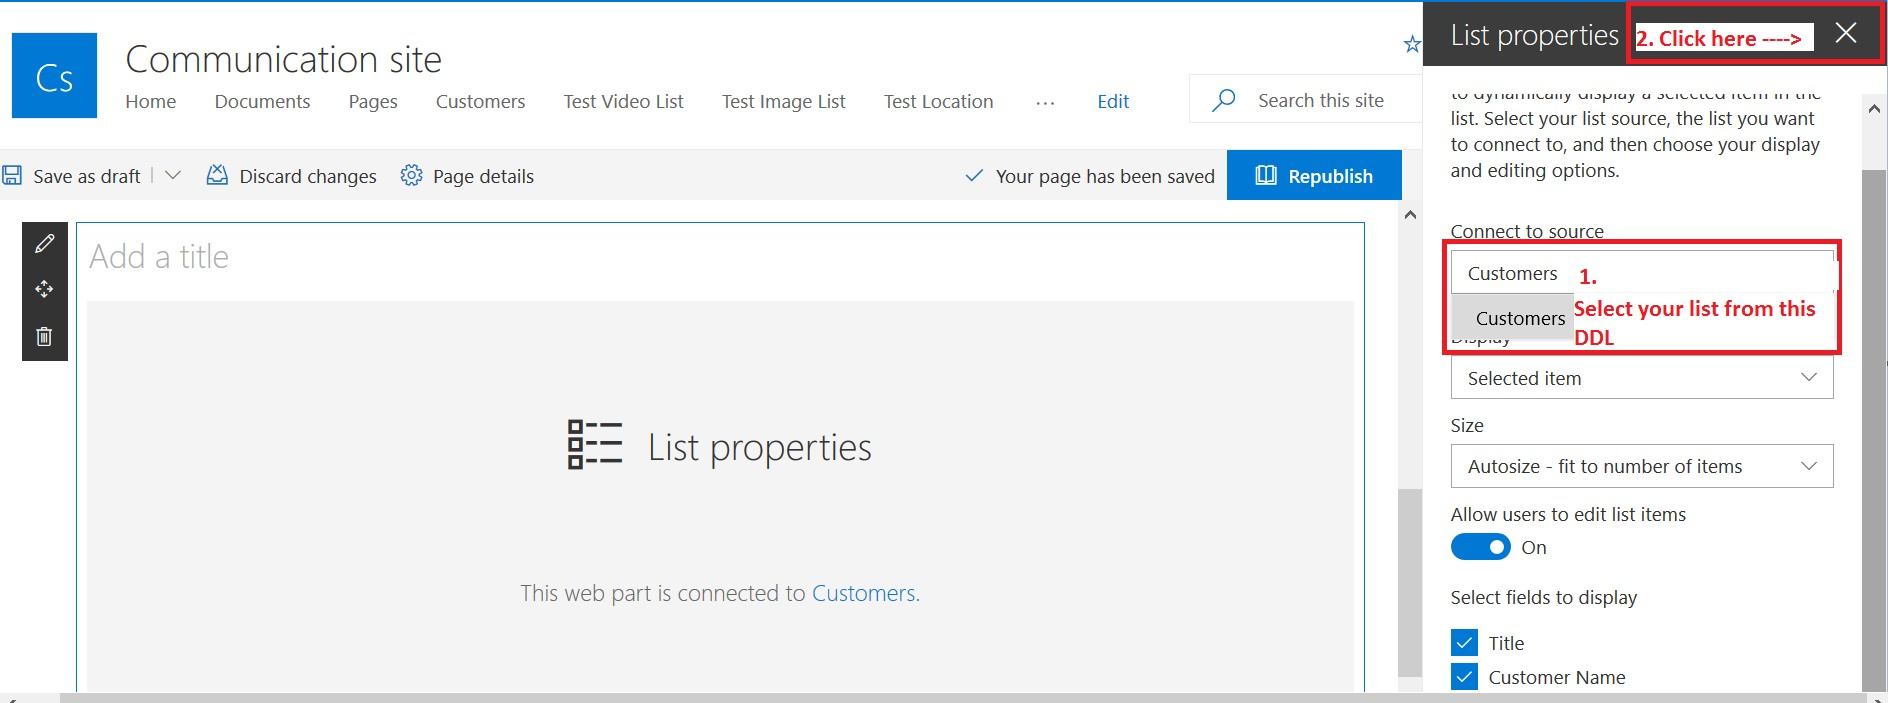 Connect to source in list view web part drop-down list - SharePoint Online